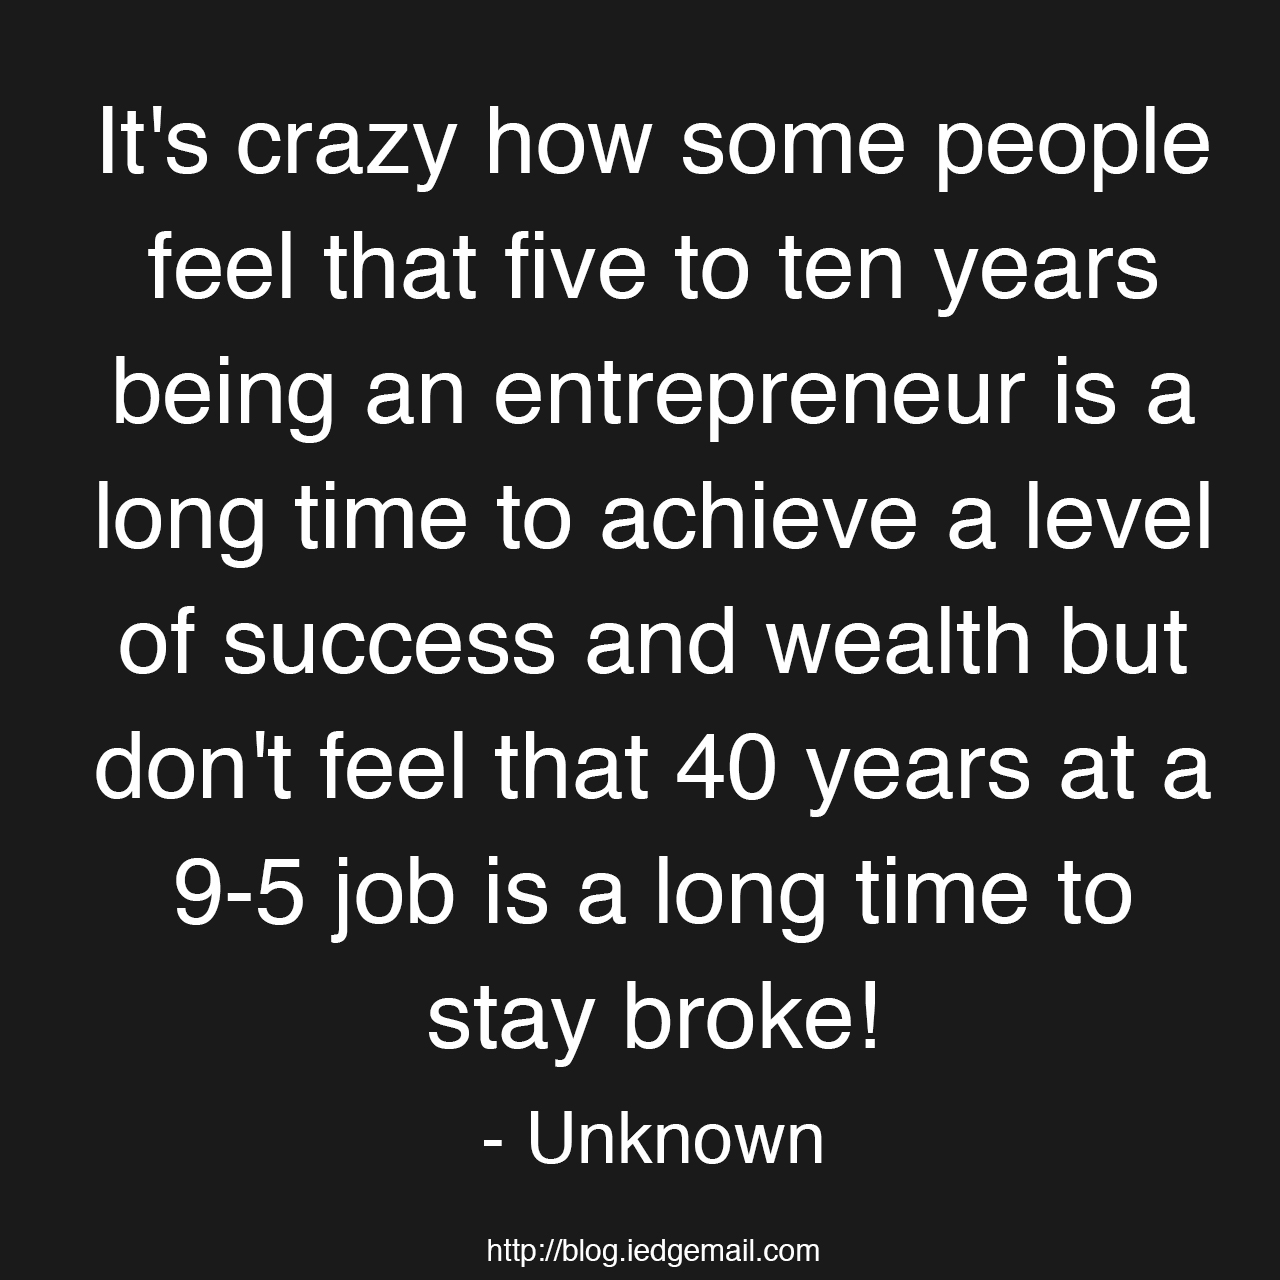 It's crazy how some people feel that five to ten years being an entrepreneur is a long time to achieve a level of success and wealth but don't feel that 40 years at a 9-5 job is a long time to stay broke!